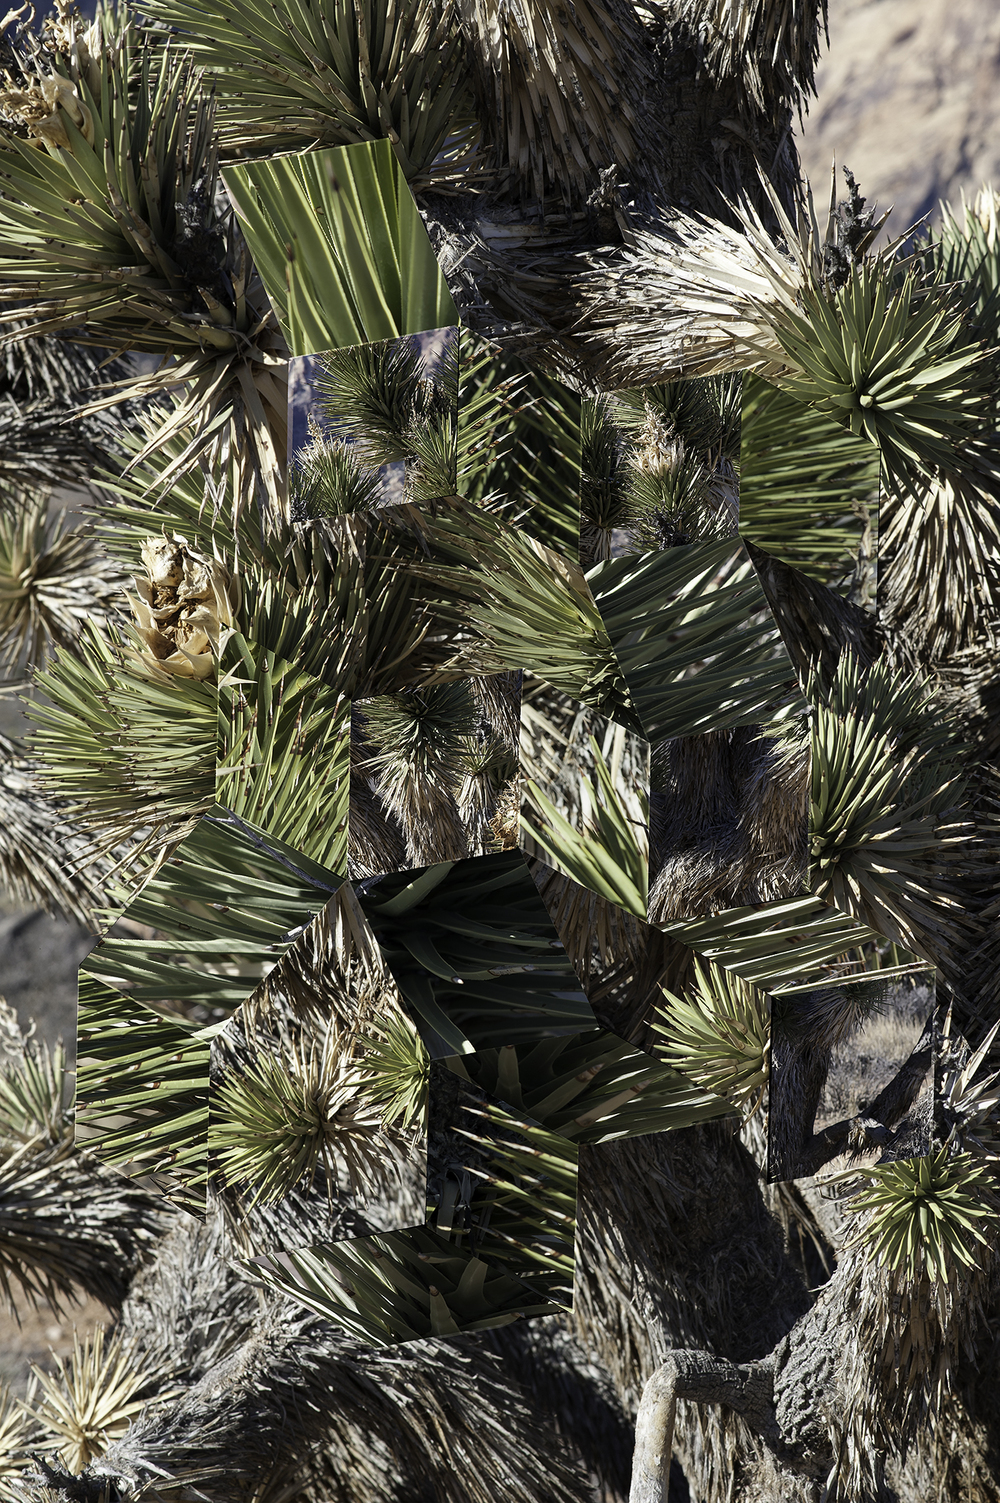 Digital Matte No. 4 (Joshua Tree),  2016